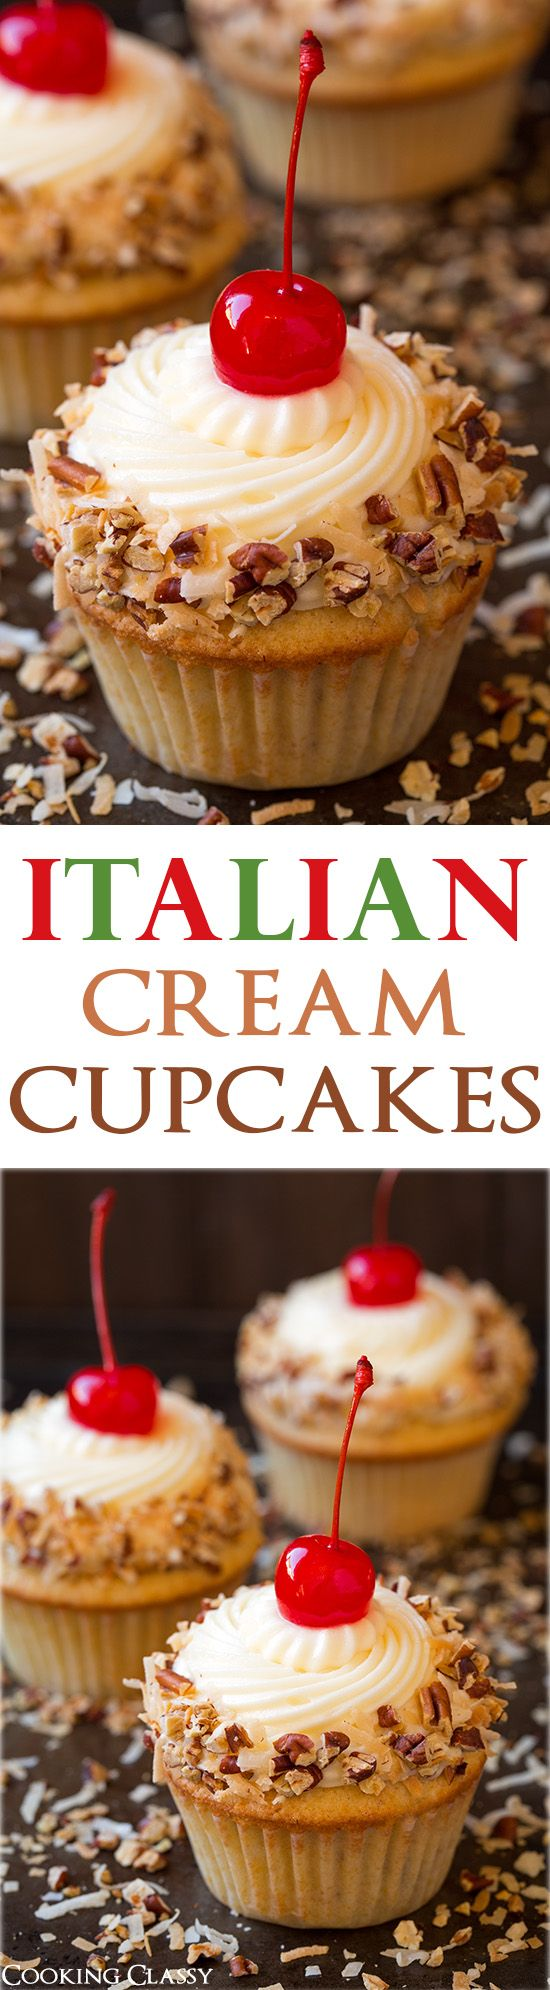 Italian Cream Cupcakes - these are truly DIVINE! Toasted coconut and pecans in buttermilk cake batter topped with luscious cream cheese frosting!